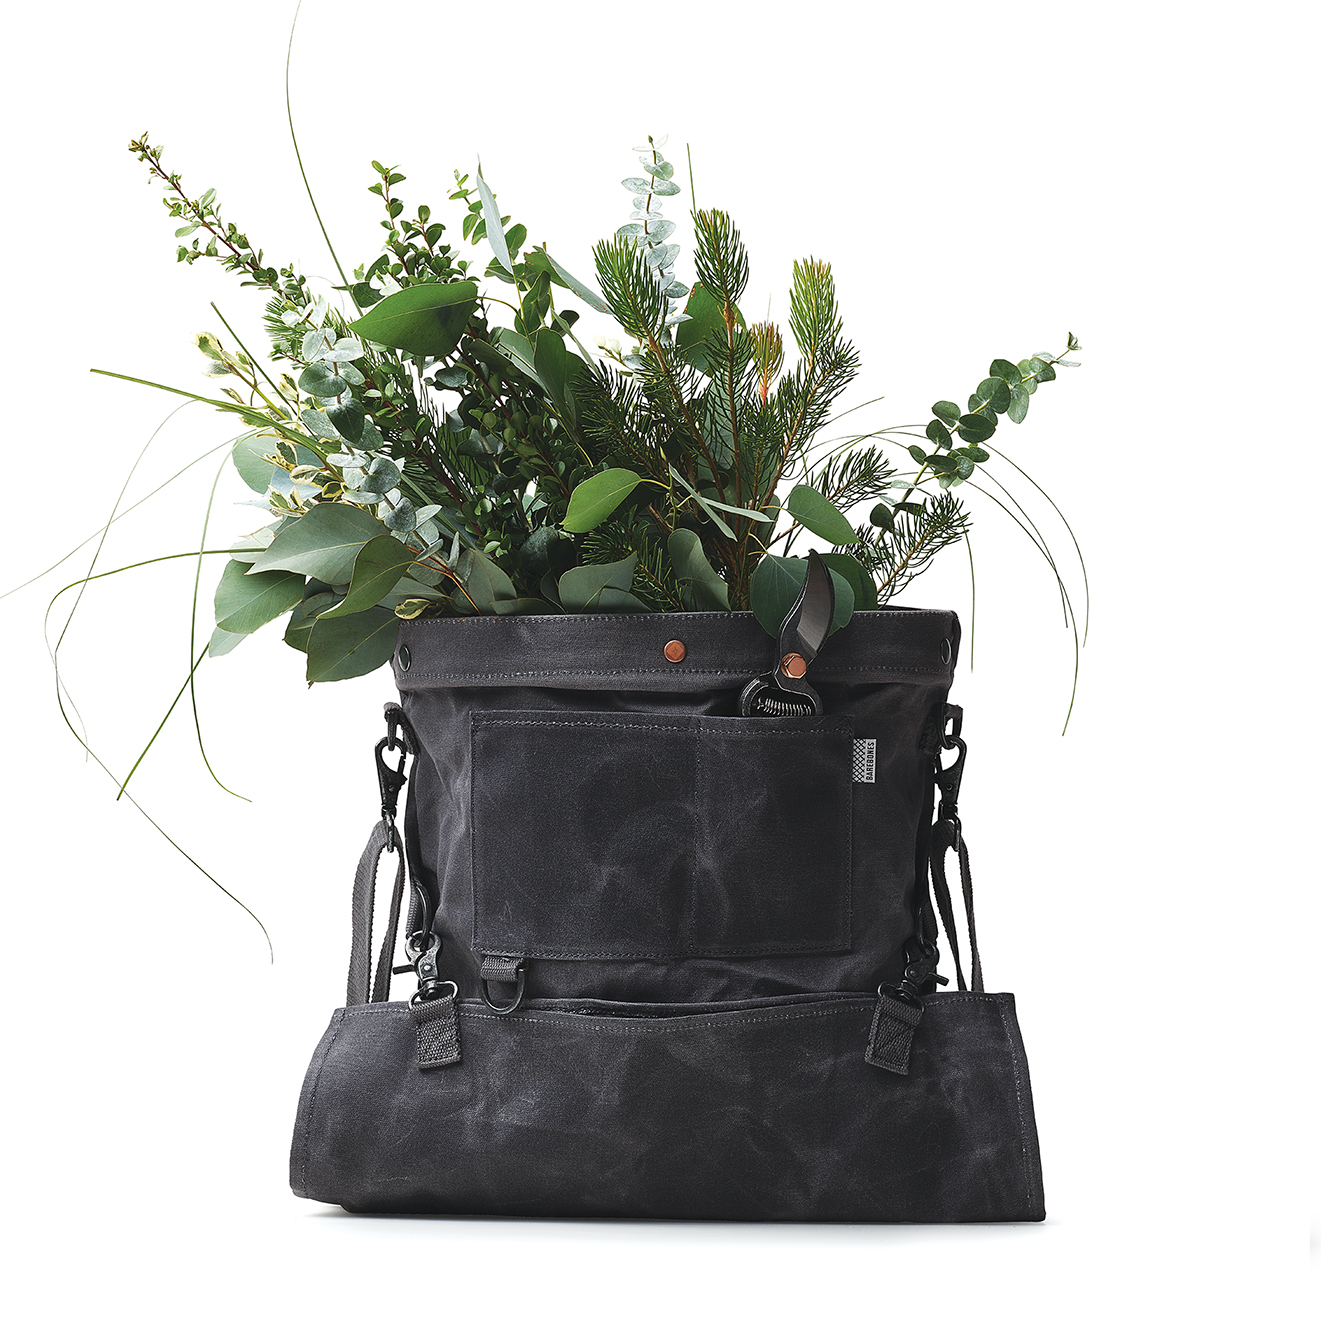 BAREBONES LIVING Gathering and Foraging Canvas Bag